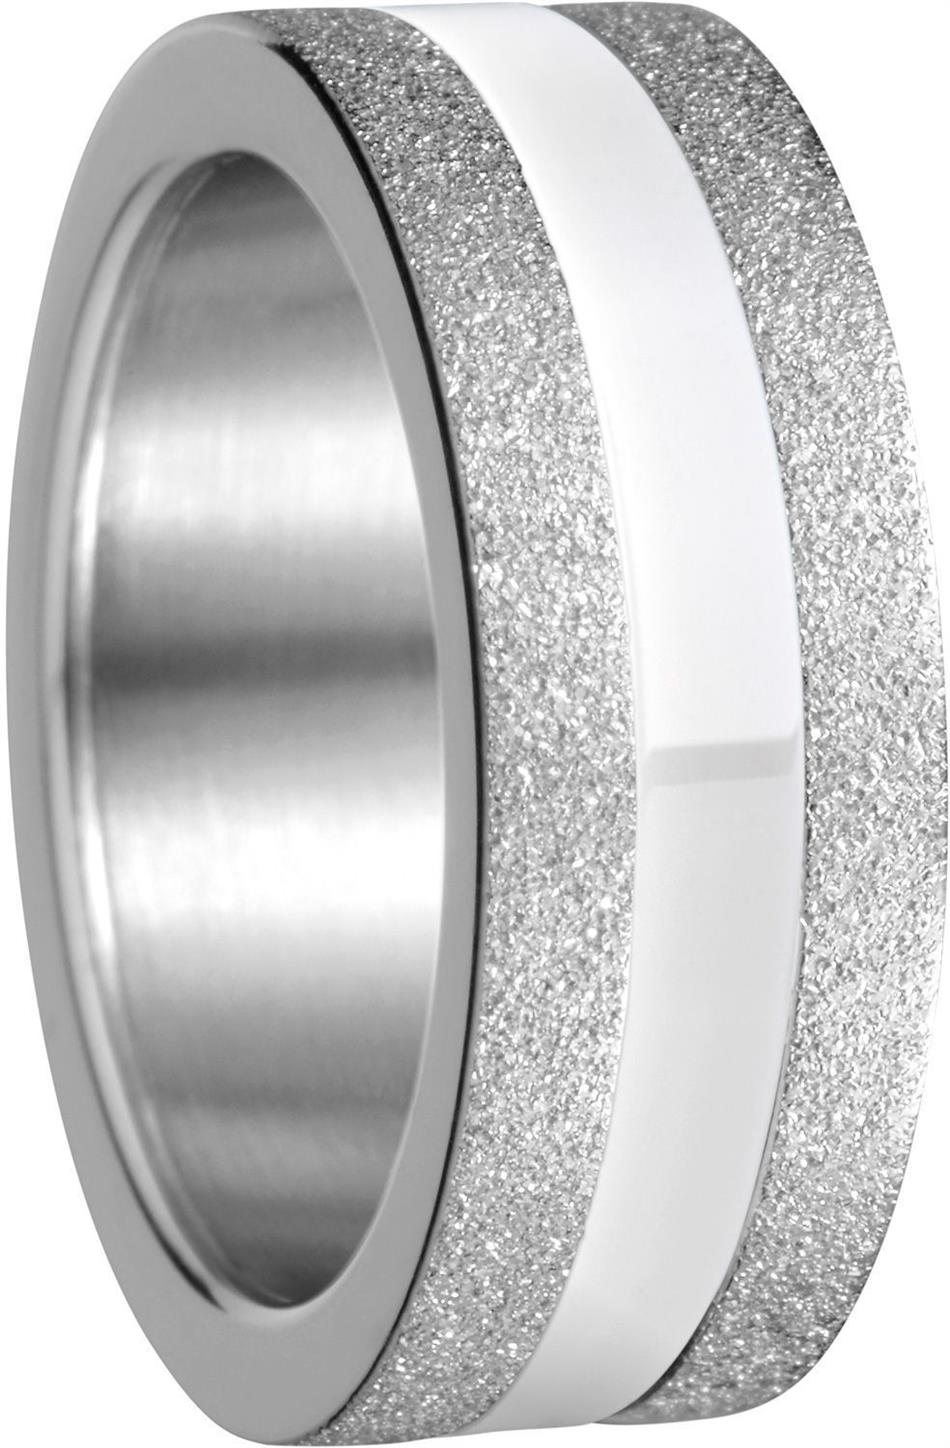 Bering - Combi-Ring - Slim Ladies Sparkling Silver Plated Stainless Steel w/ White Ceramic Inner Ring